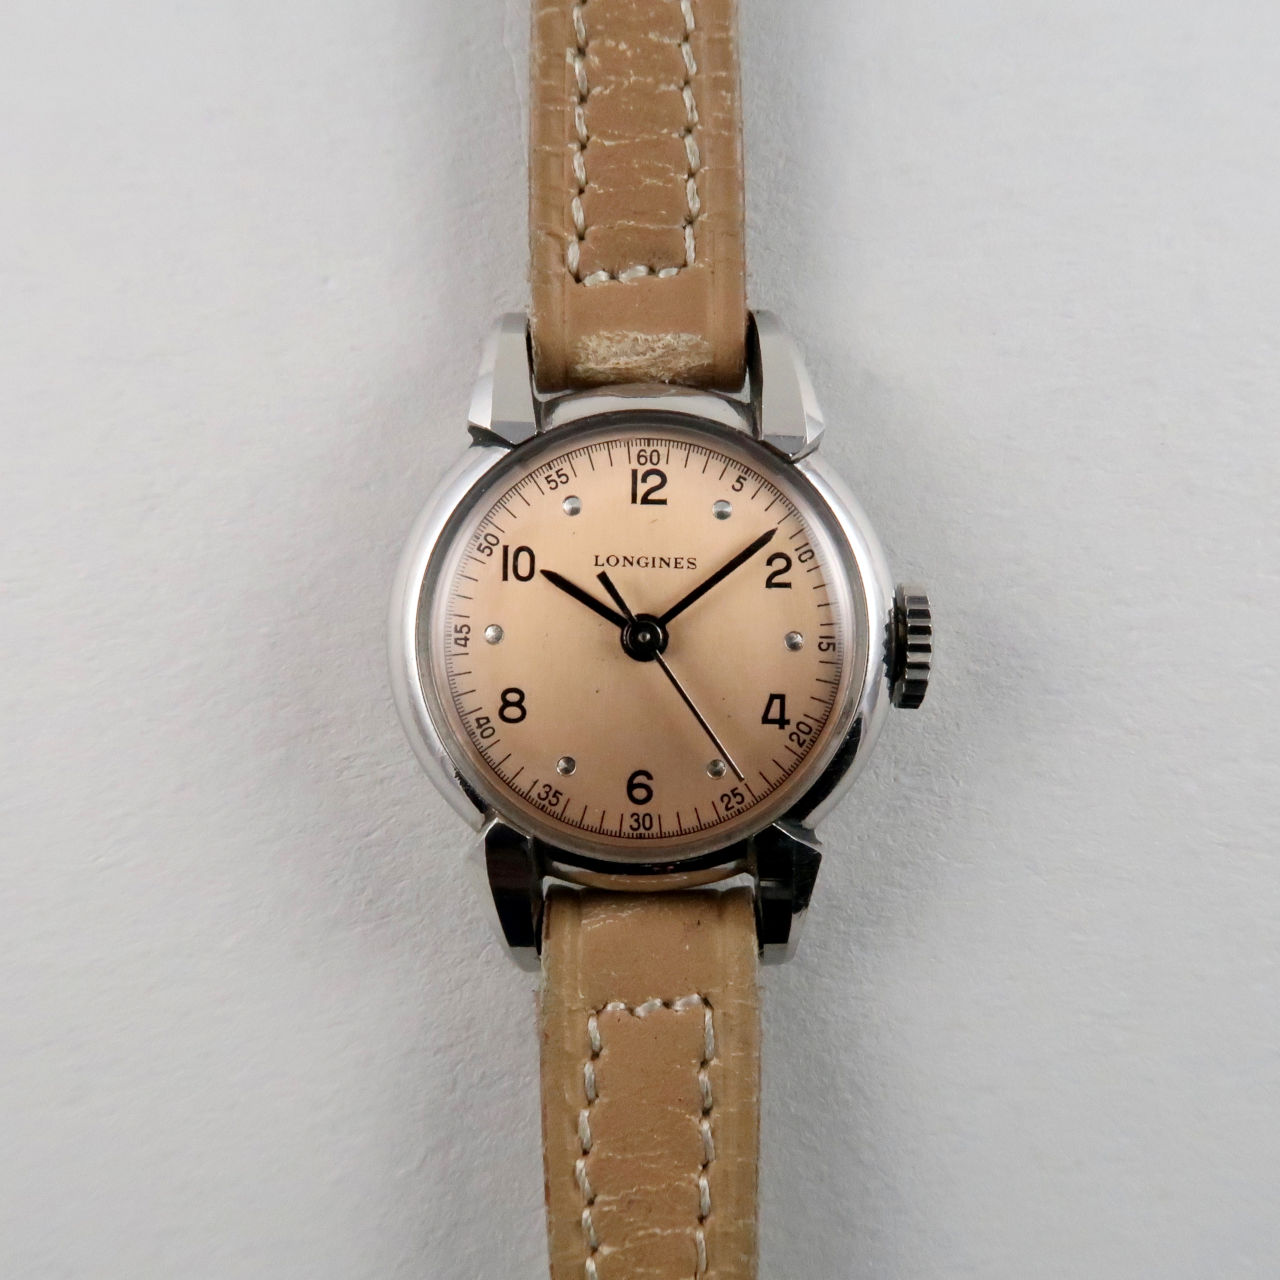 Longines Ref. 5620 lady's wristwatch, invoiced on 23 November 1948